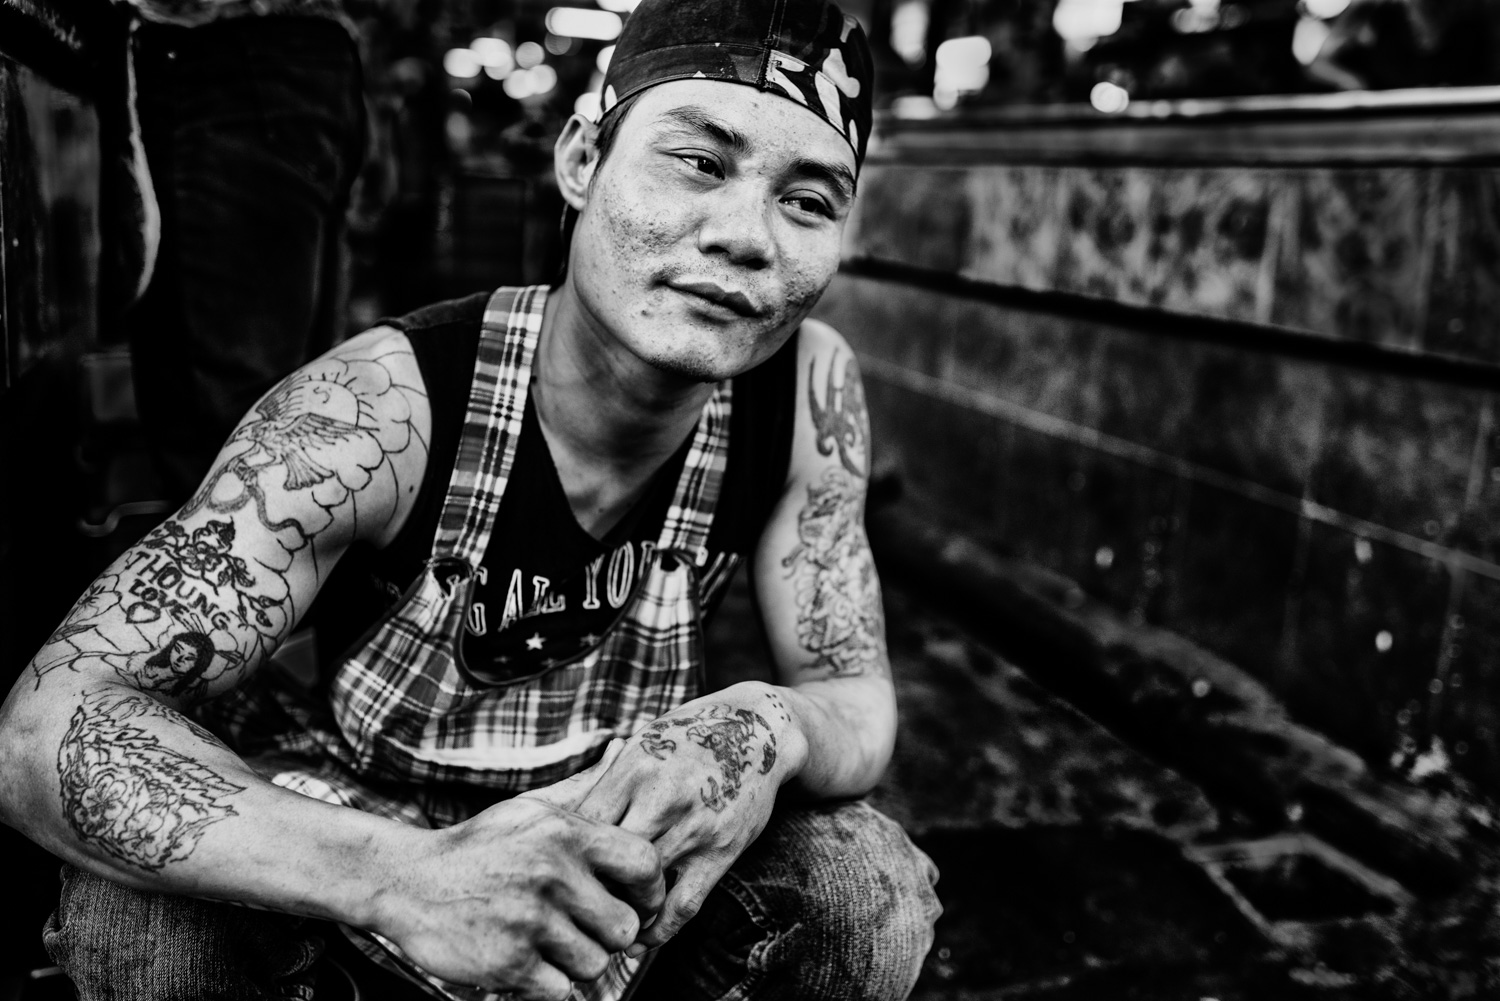 Black and white street photography portrait of a tattooed man. © Kevin Landwer-Johan.